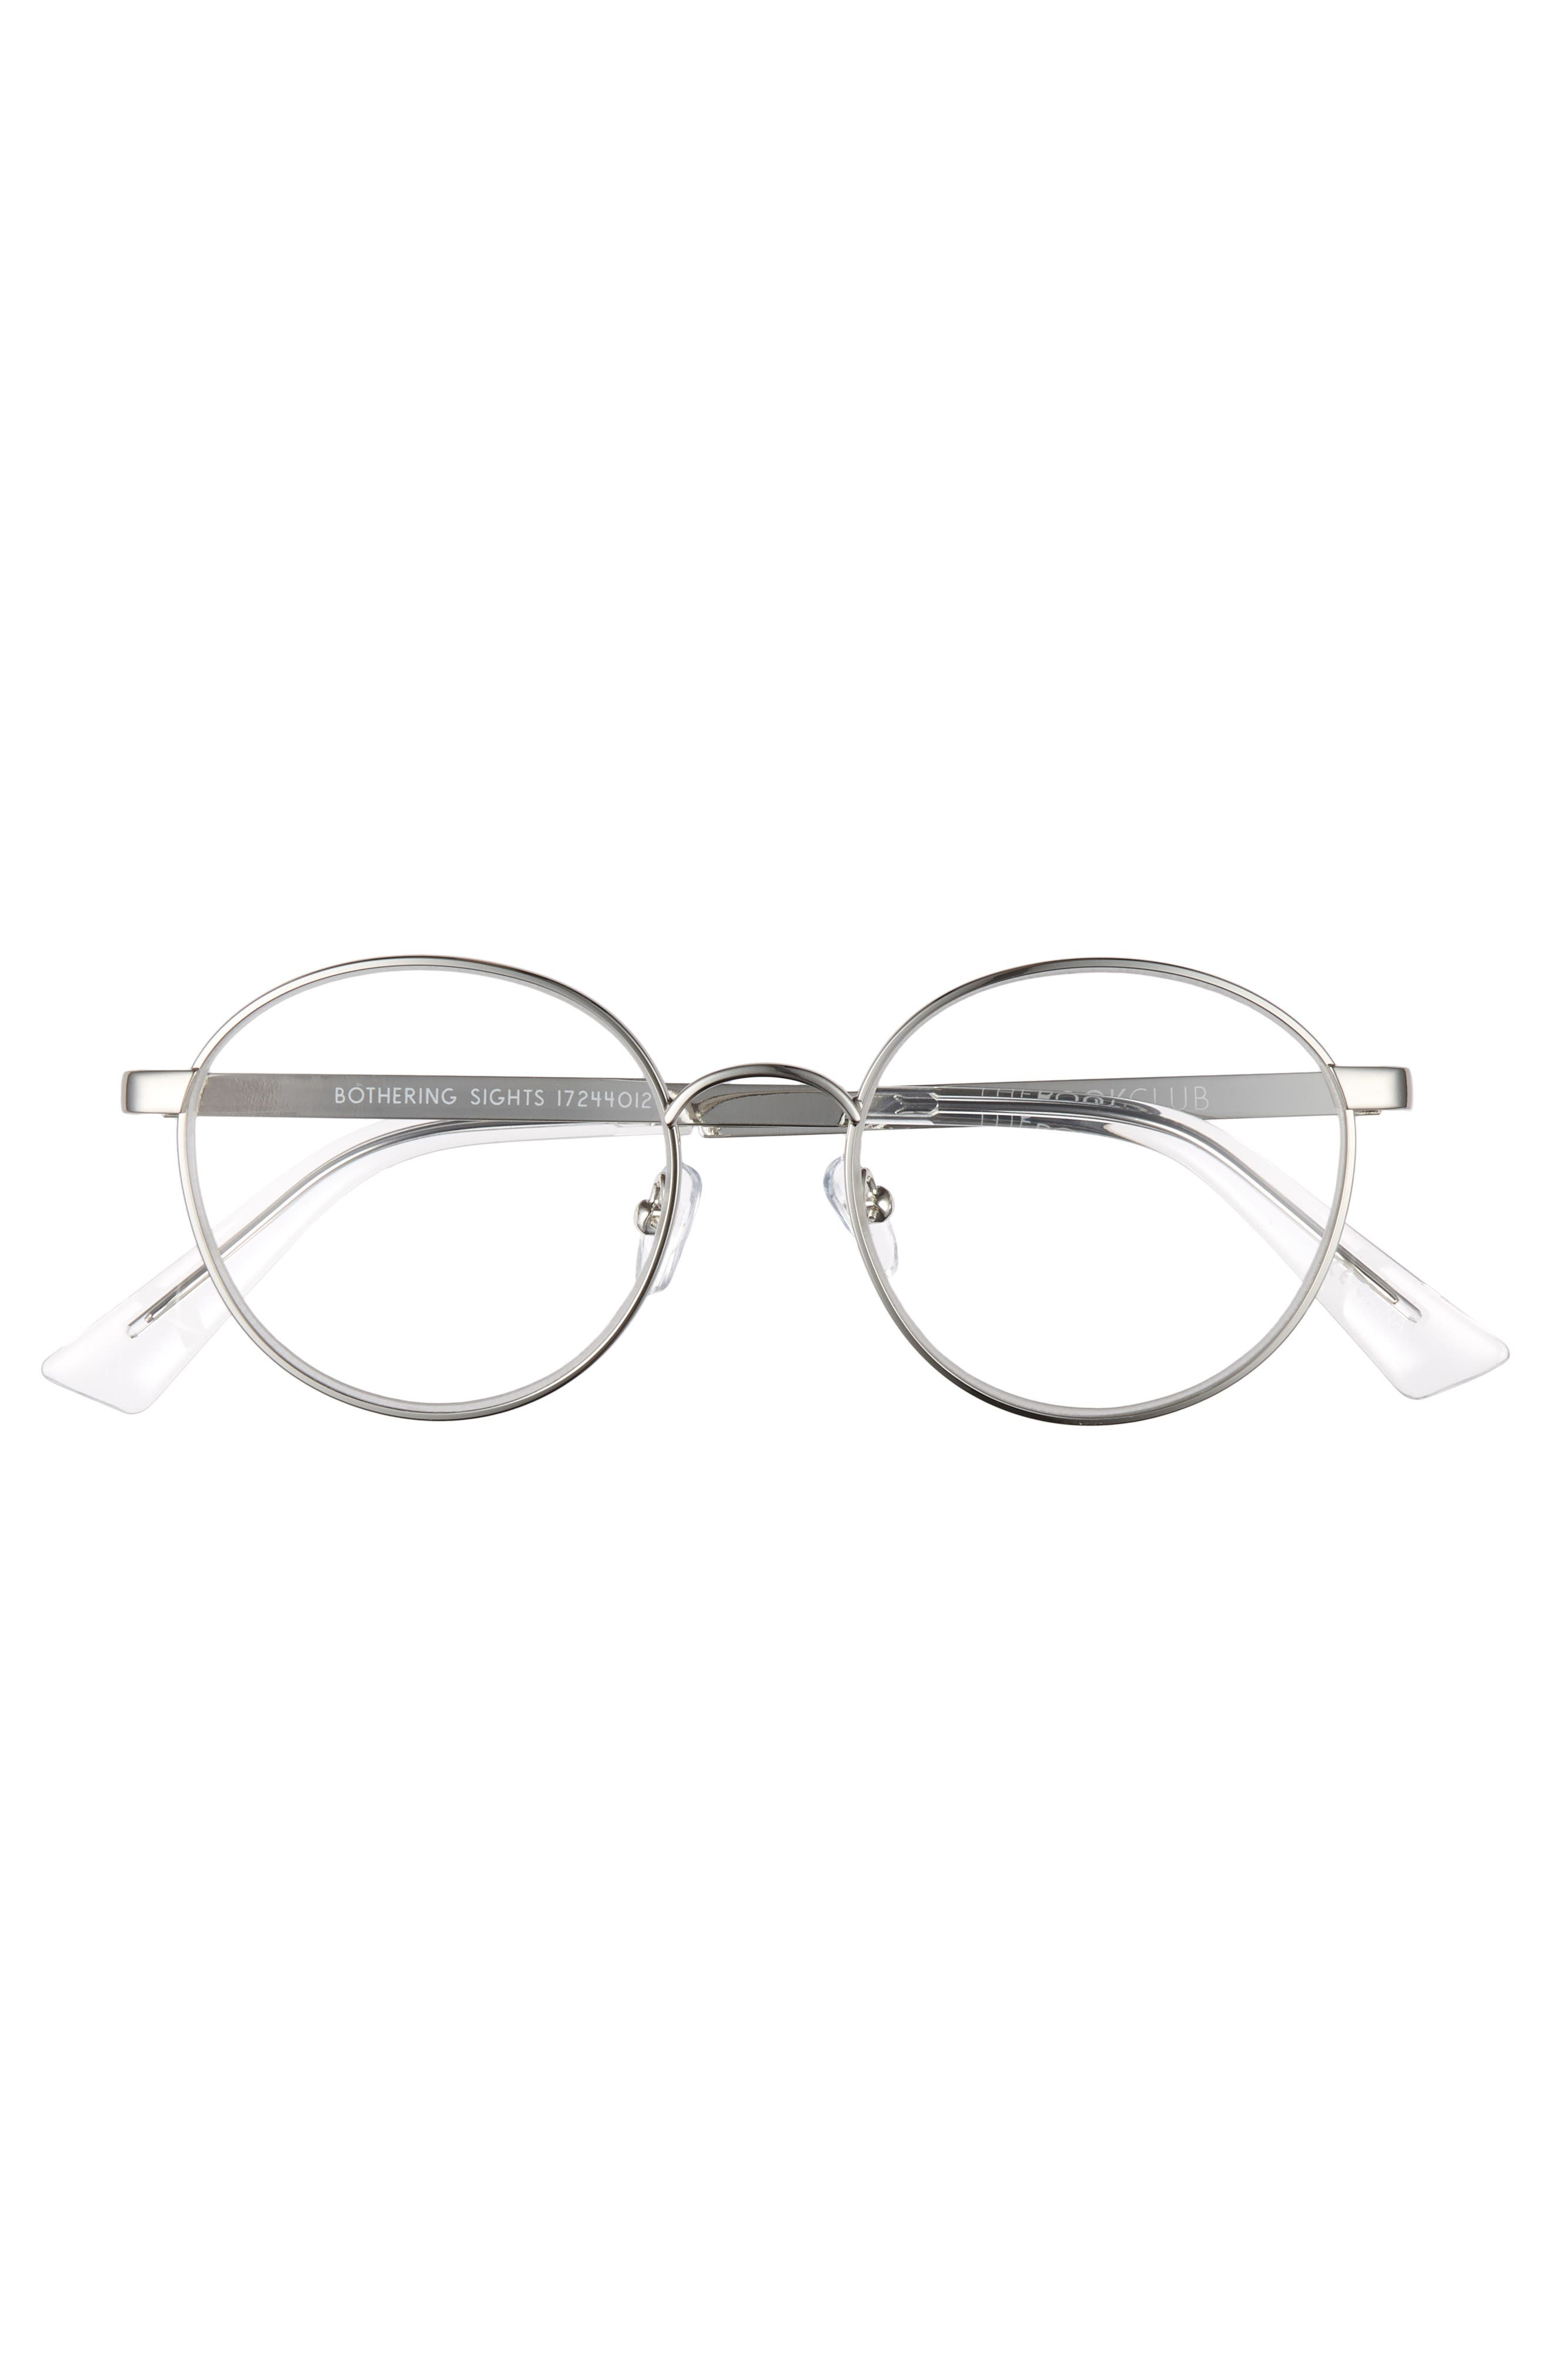 Bothering Sights 51mm Reading Glasses,                             Alternate thumbnail 3, color,                             040